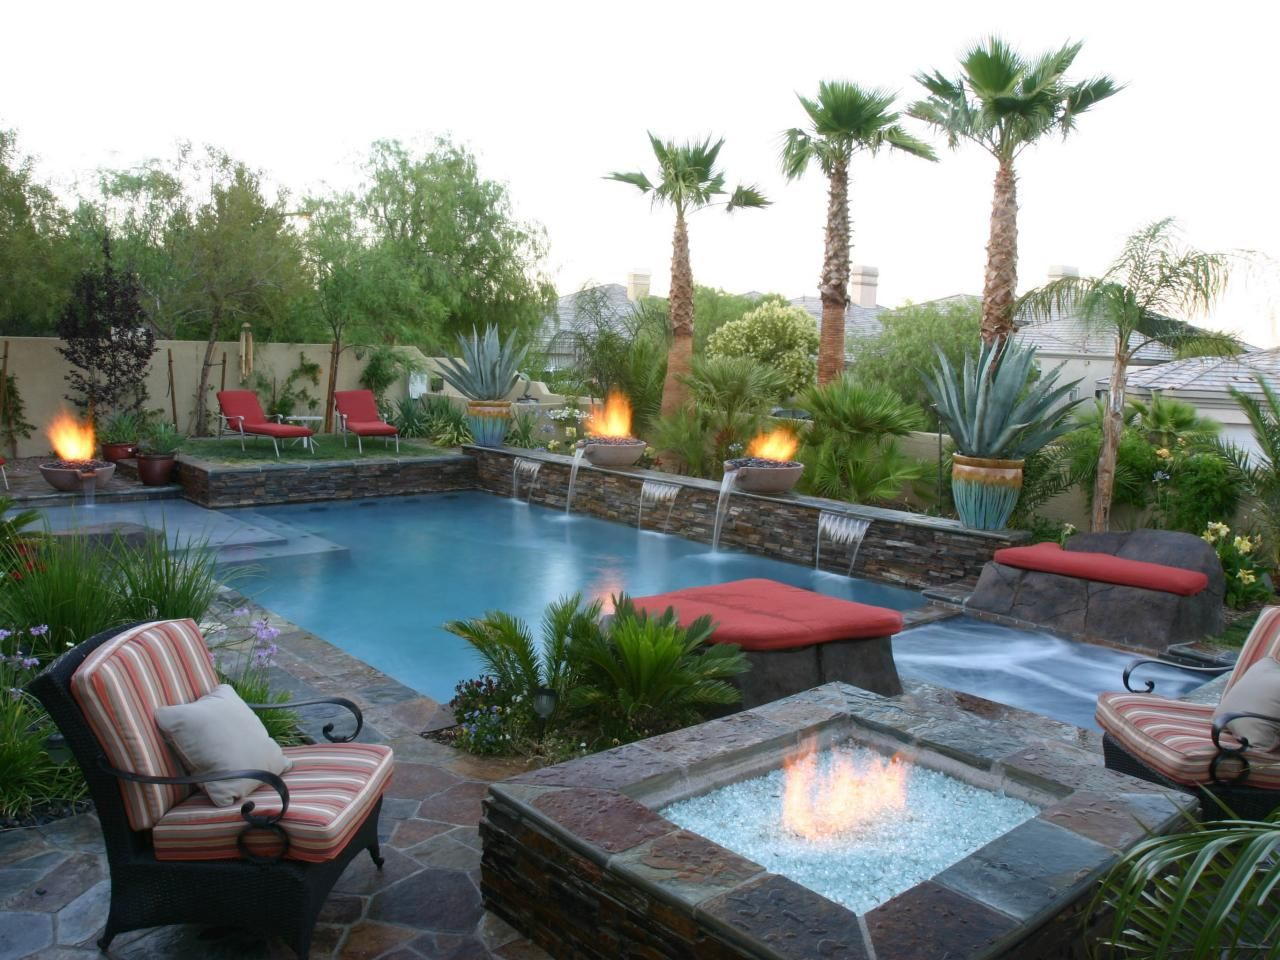 FENG SHUI SWIMMING POOLS & WATER ELEMENTS